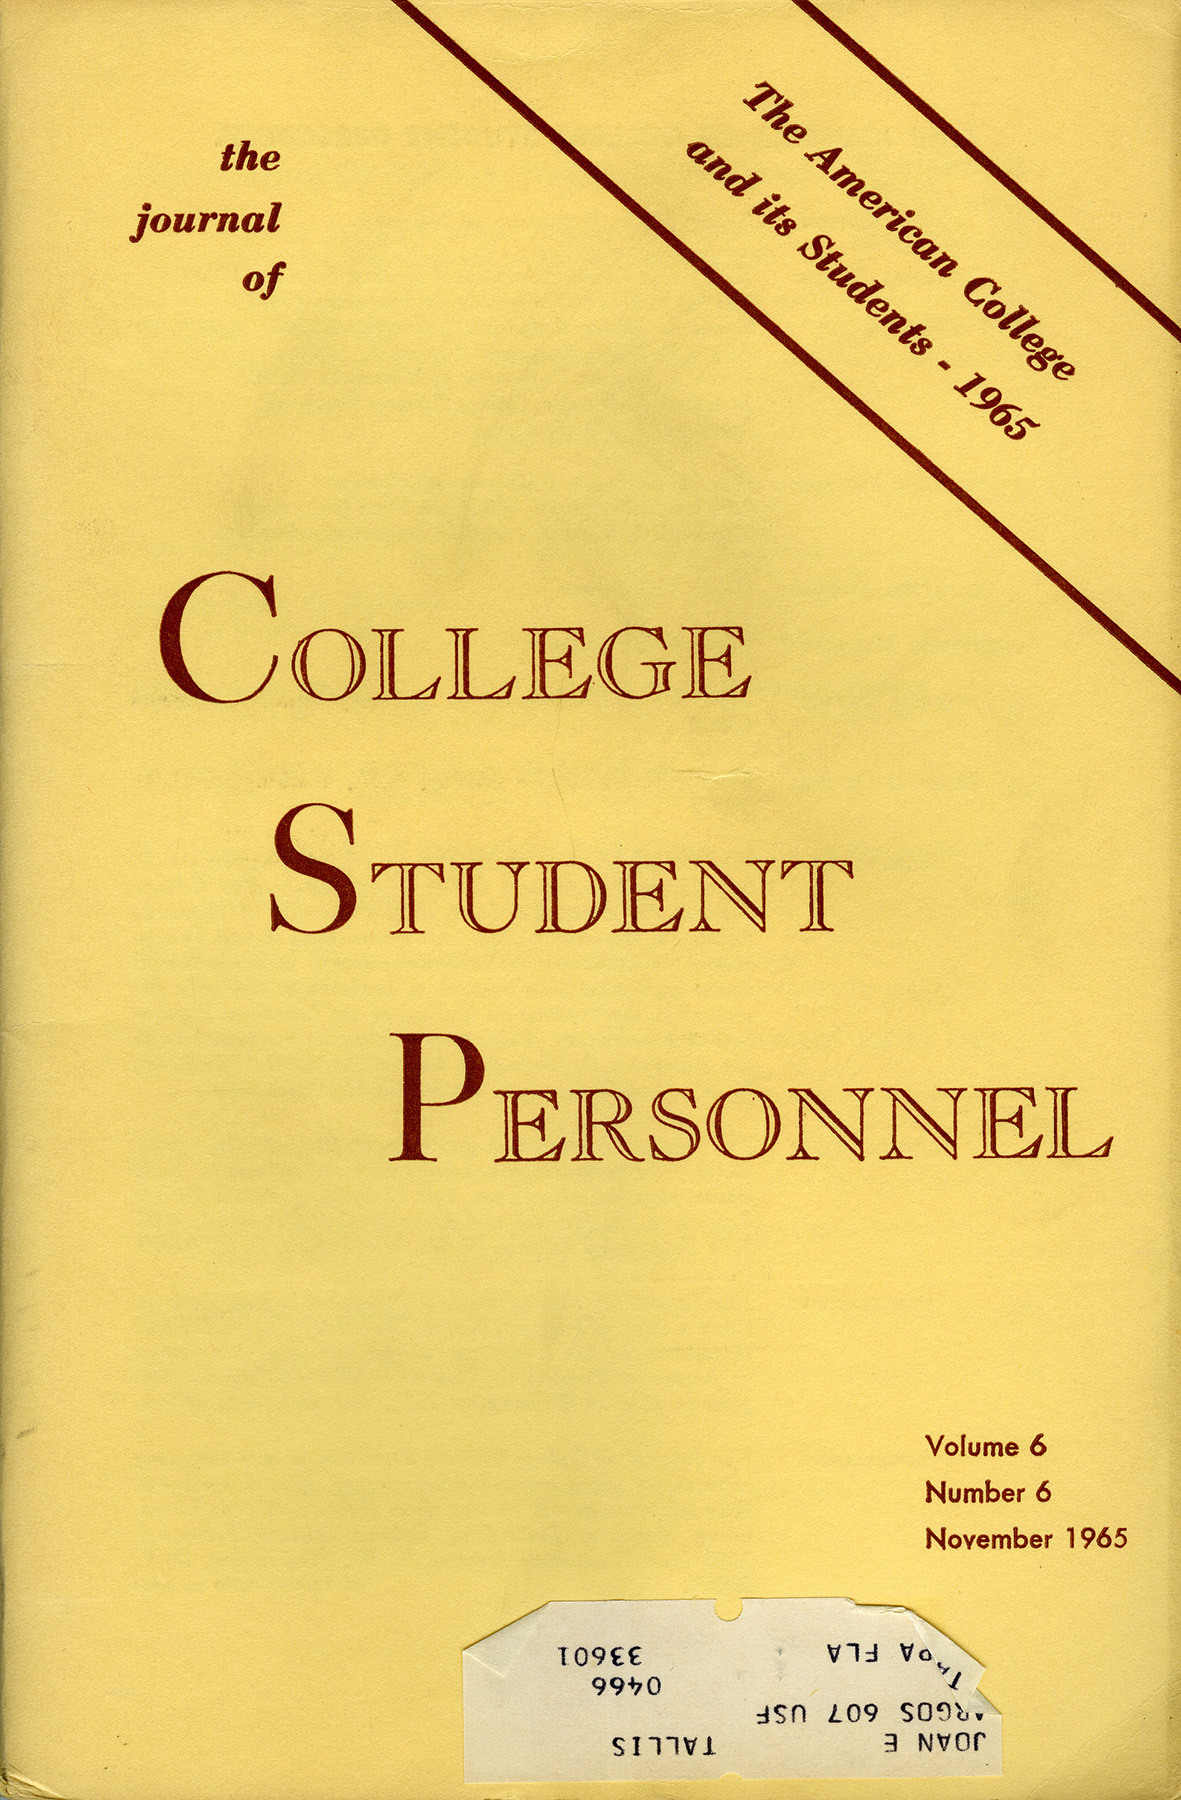 The Journal of College Student Personnel 1965 Design Change